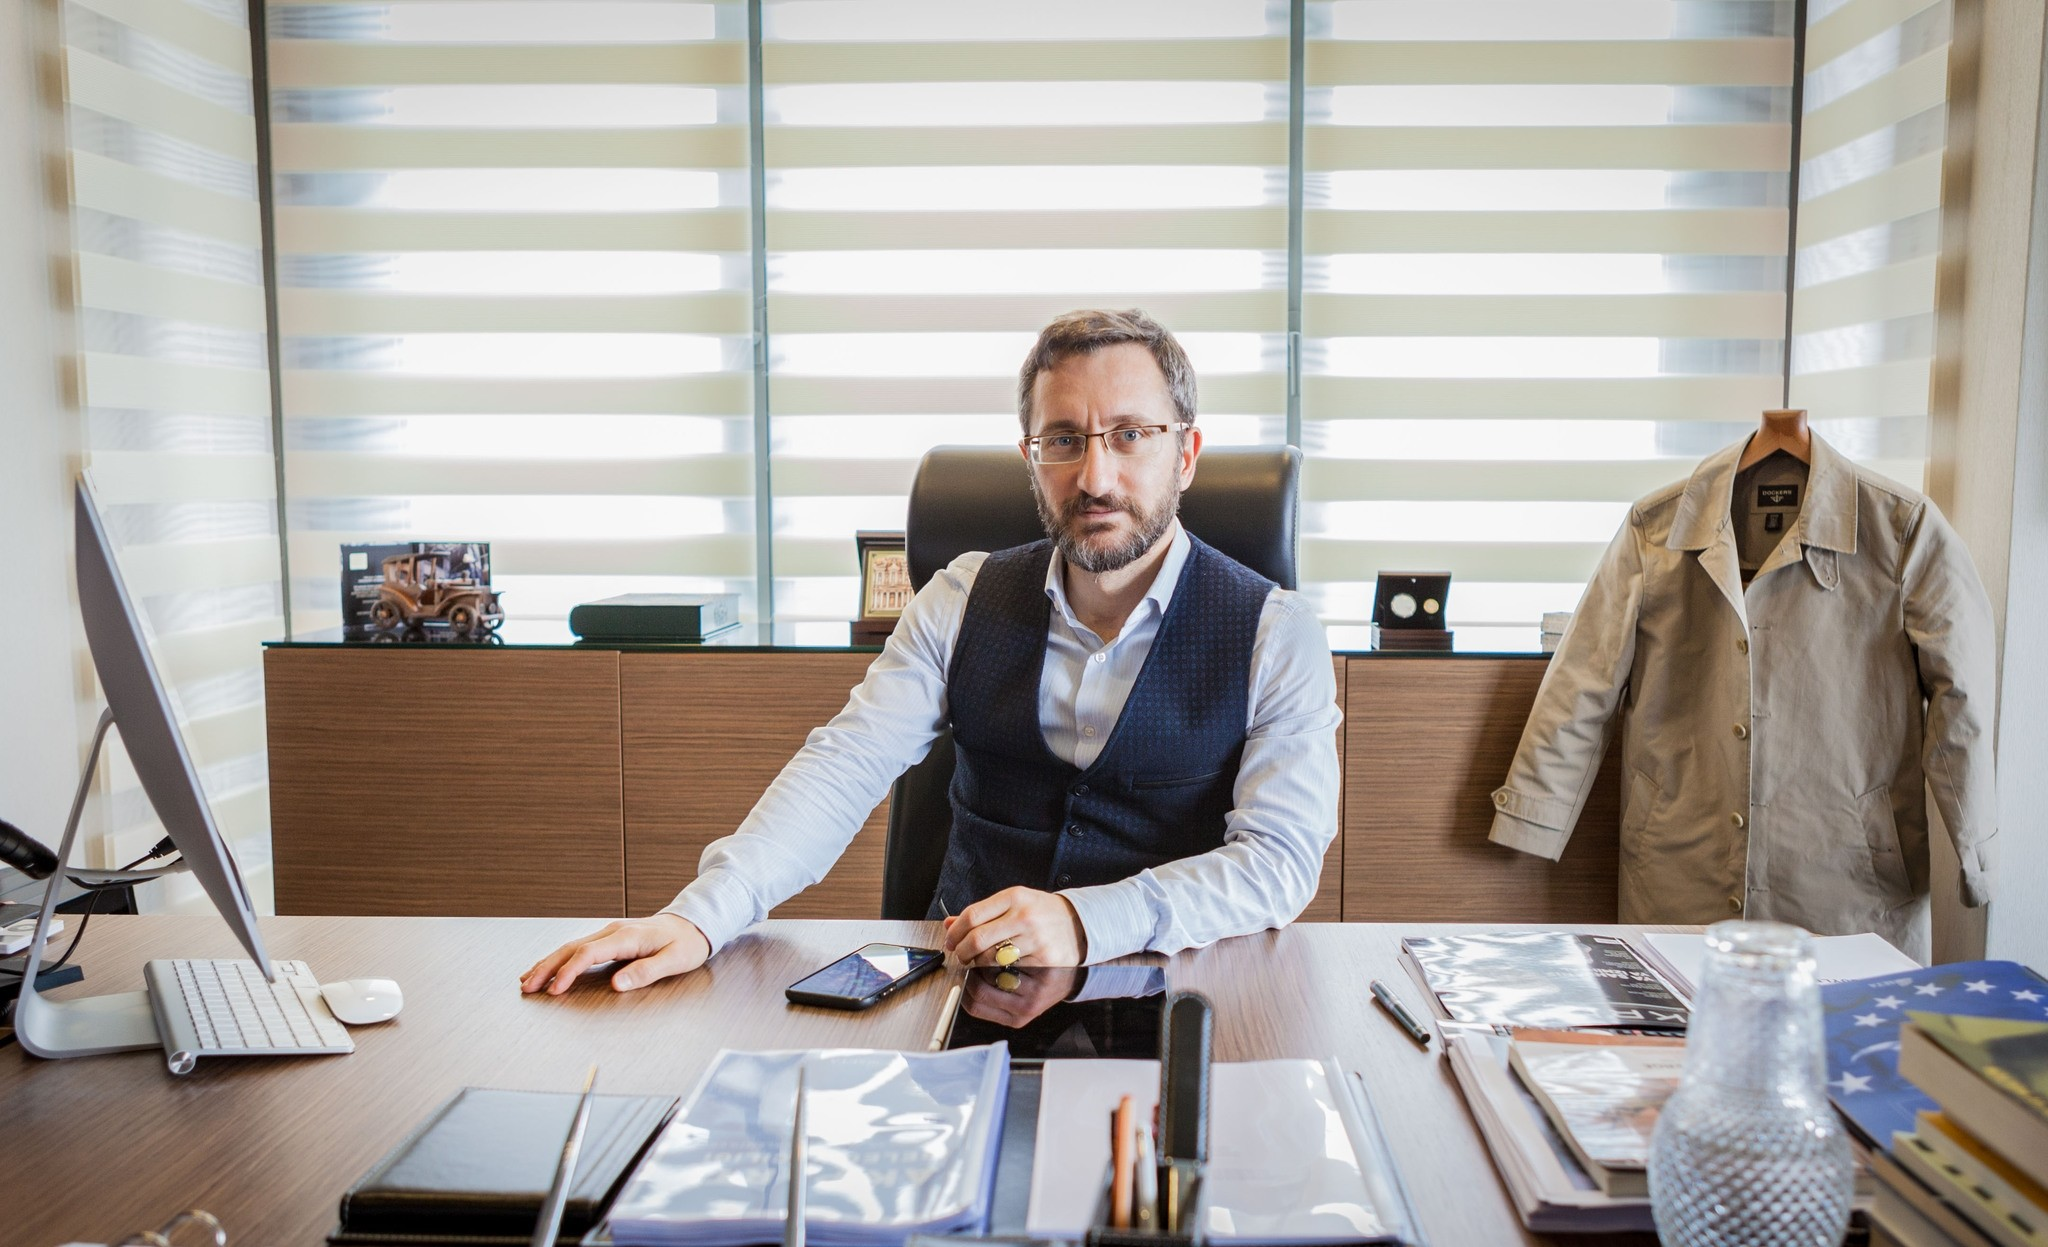 Fahrettin Altun says that Erdou011fanu2019s manifesto expresses his partyu2019s reaction to global change and the partyu2019s perspective toward foreign policy, domestic policy, economy, culture, society, state and public.